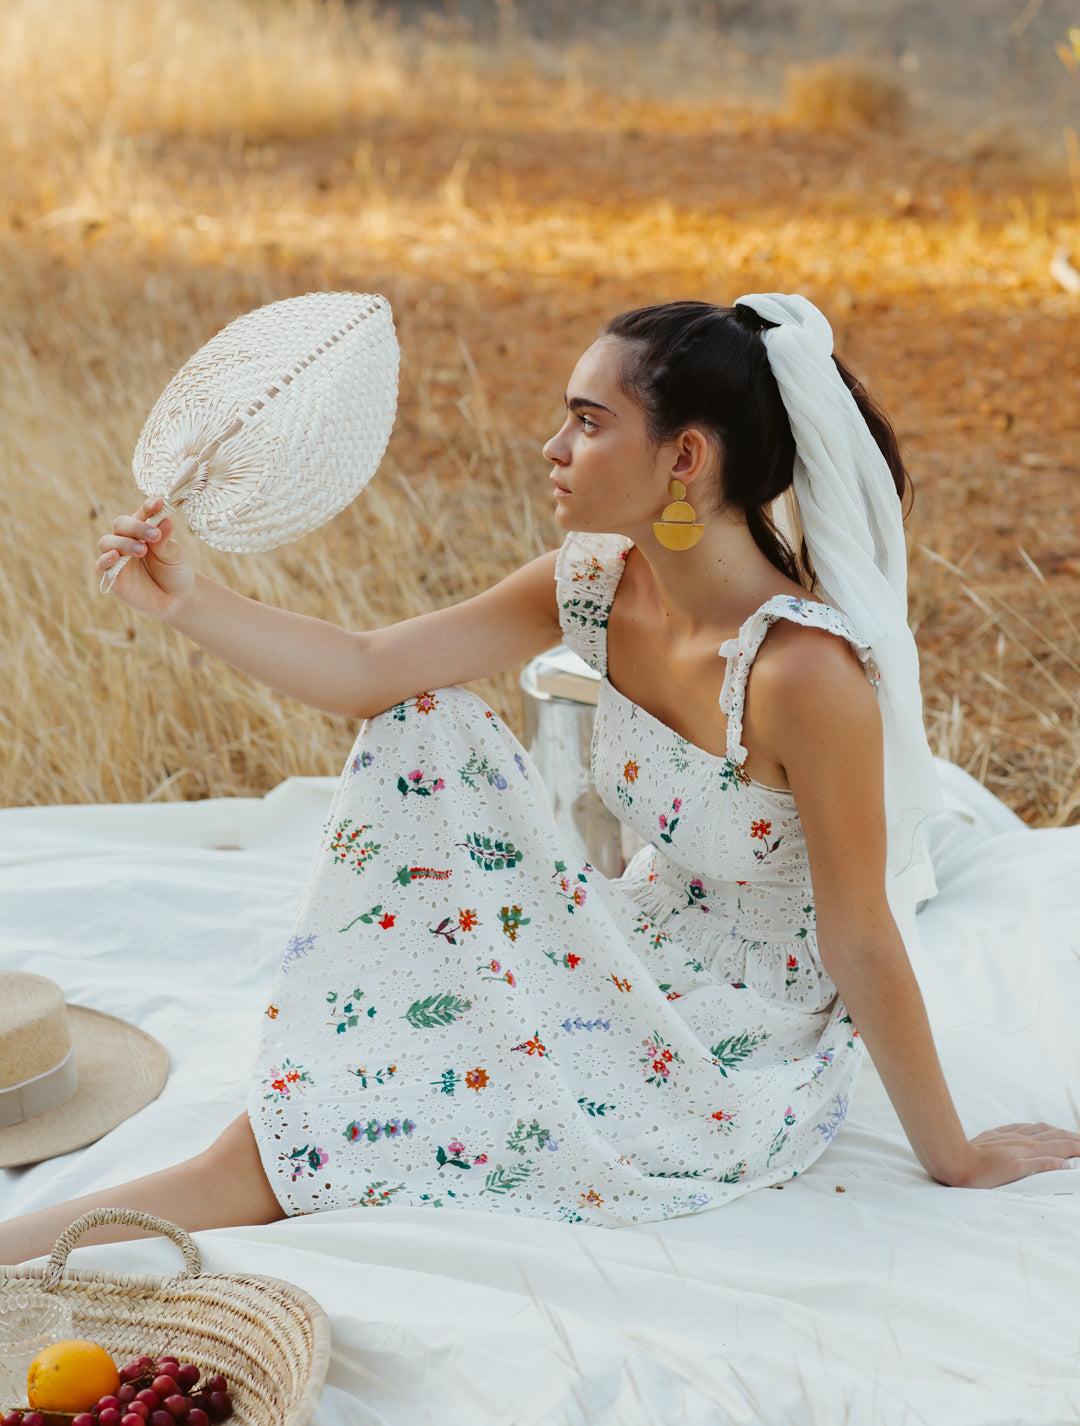 Summer Herbs Picnic dress